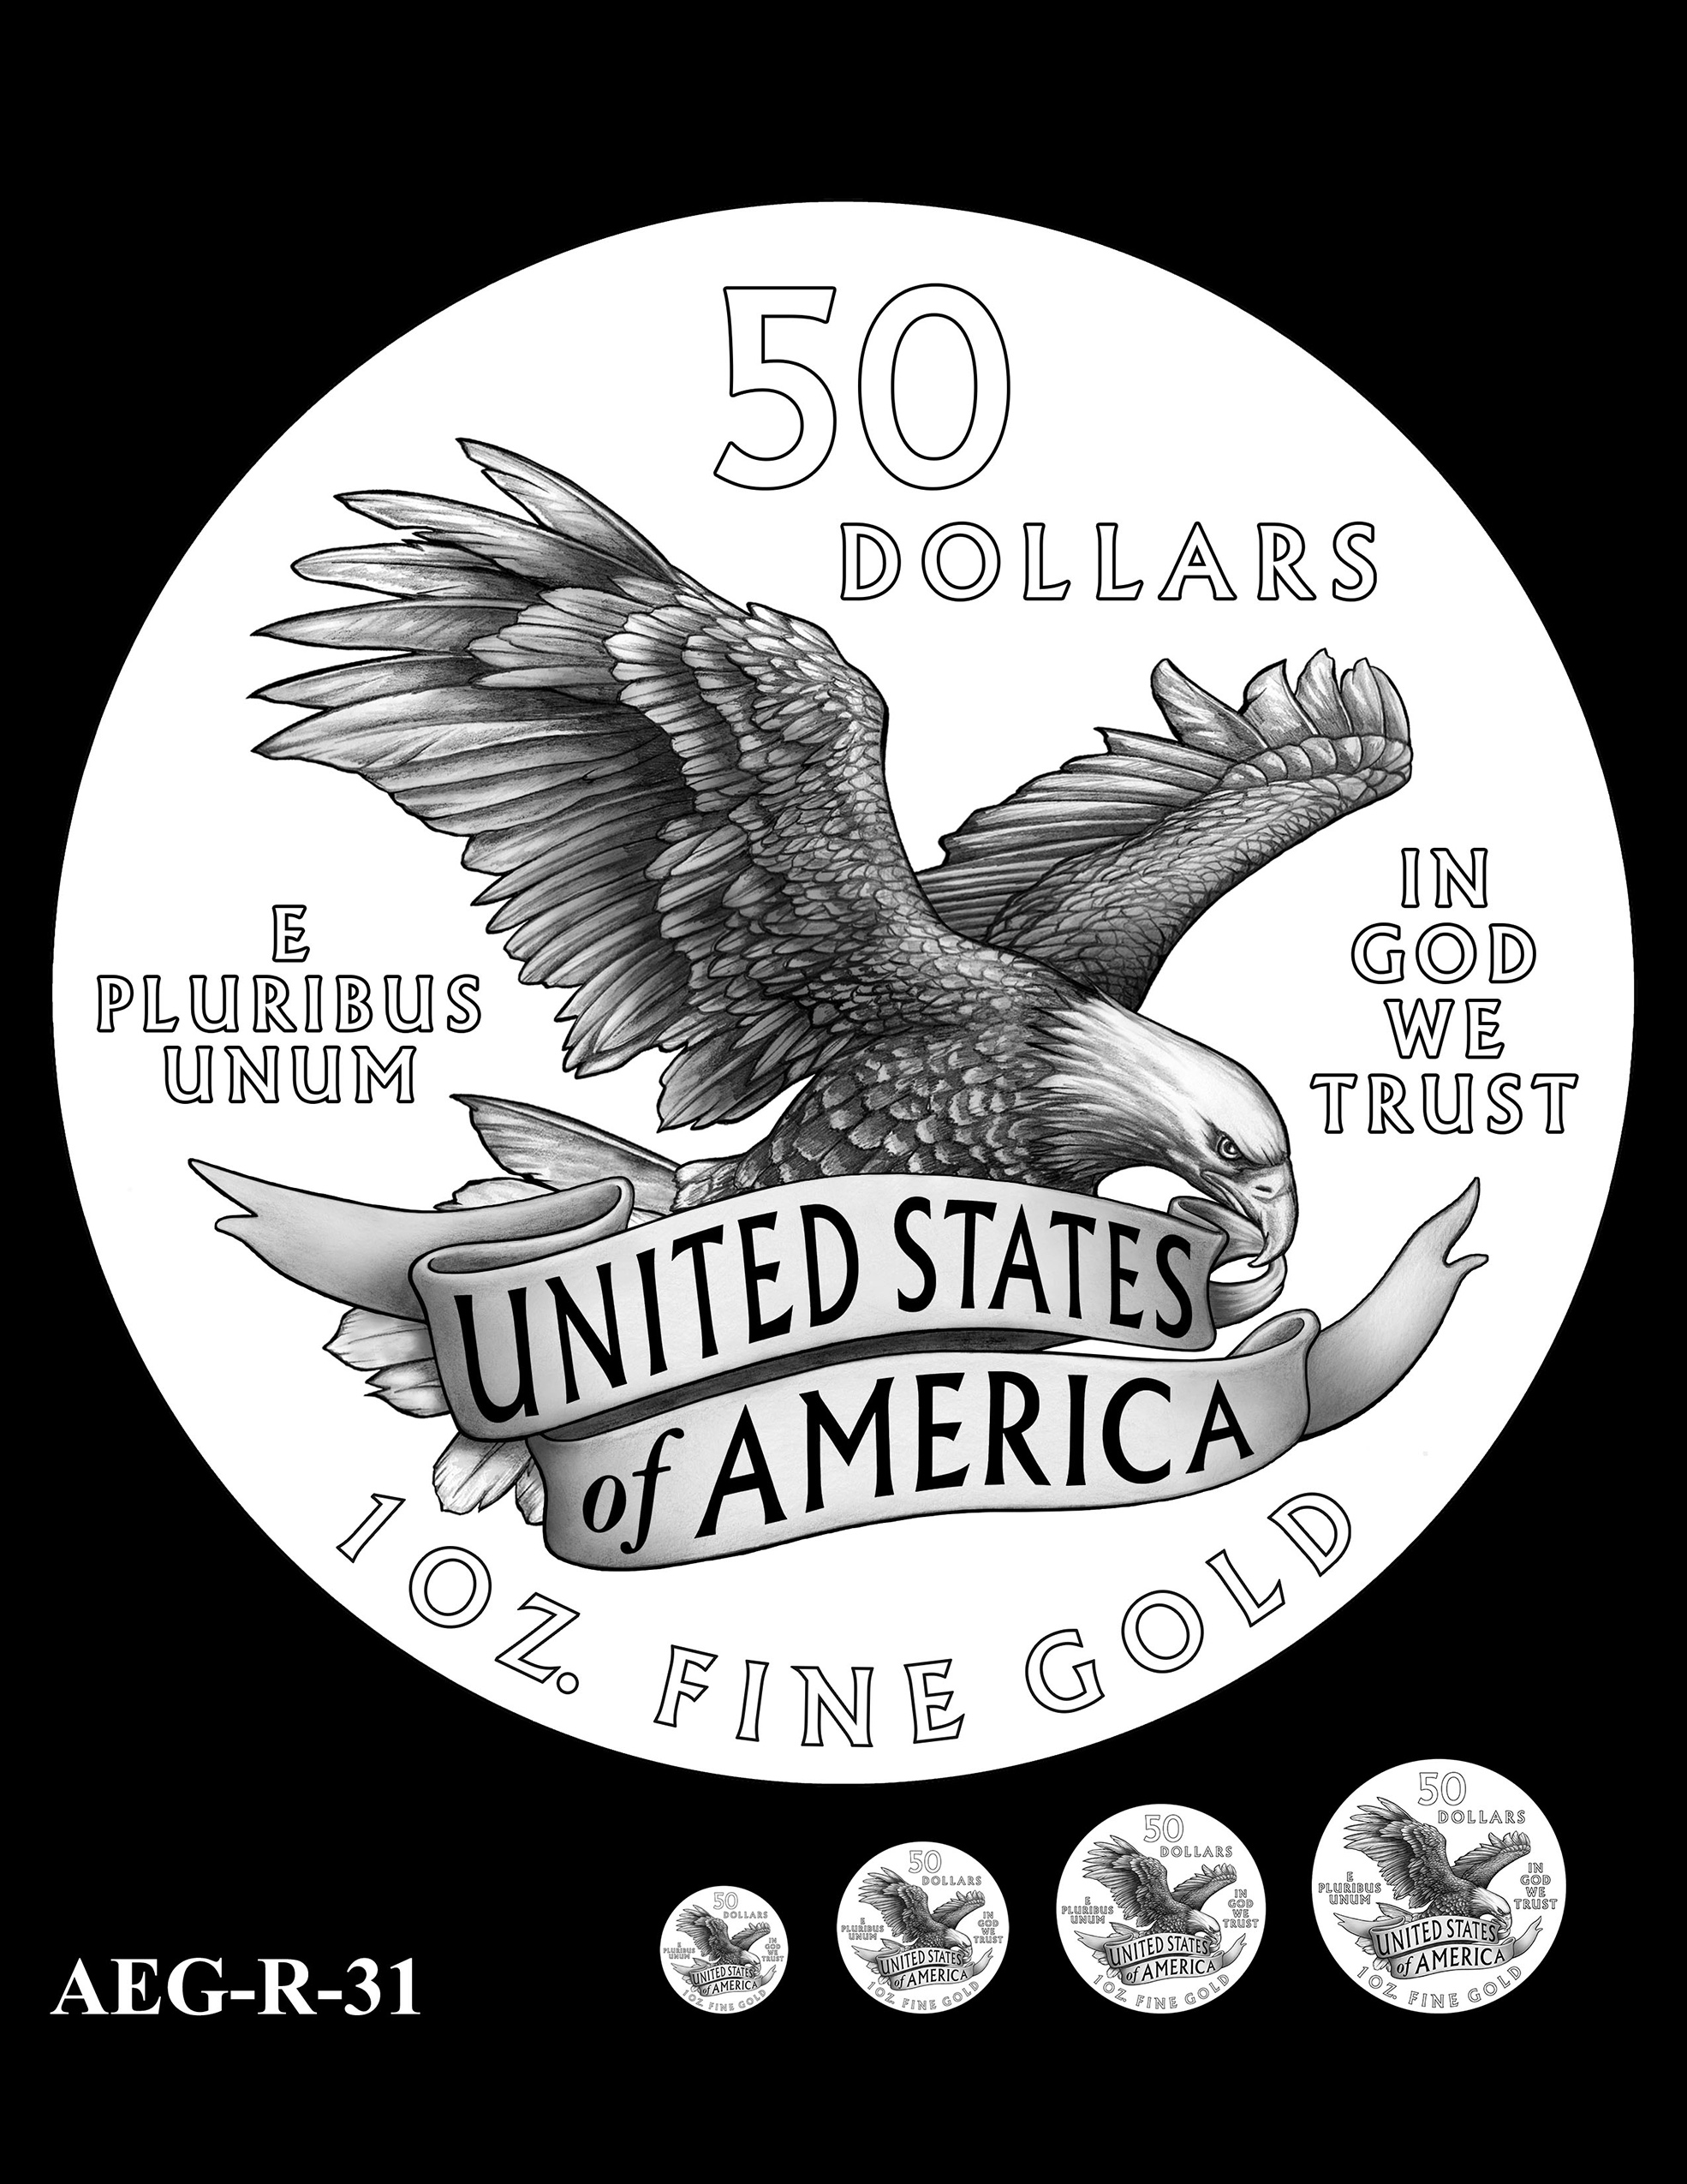 AEG-R-31 -- American Eagle Proof and Bullion Gold Coin - Reverse